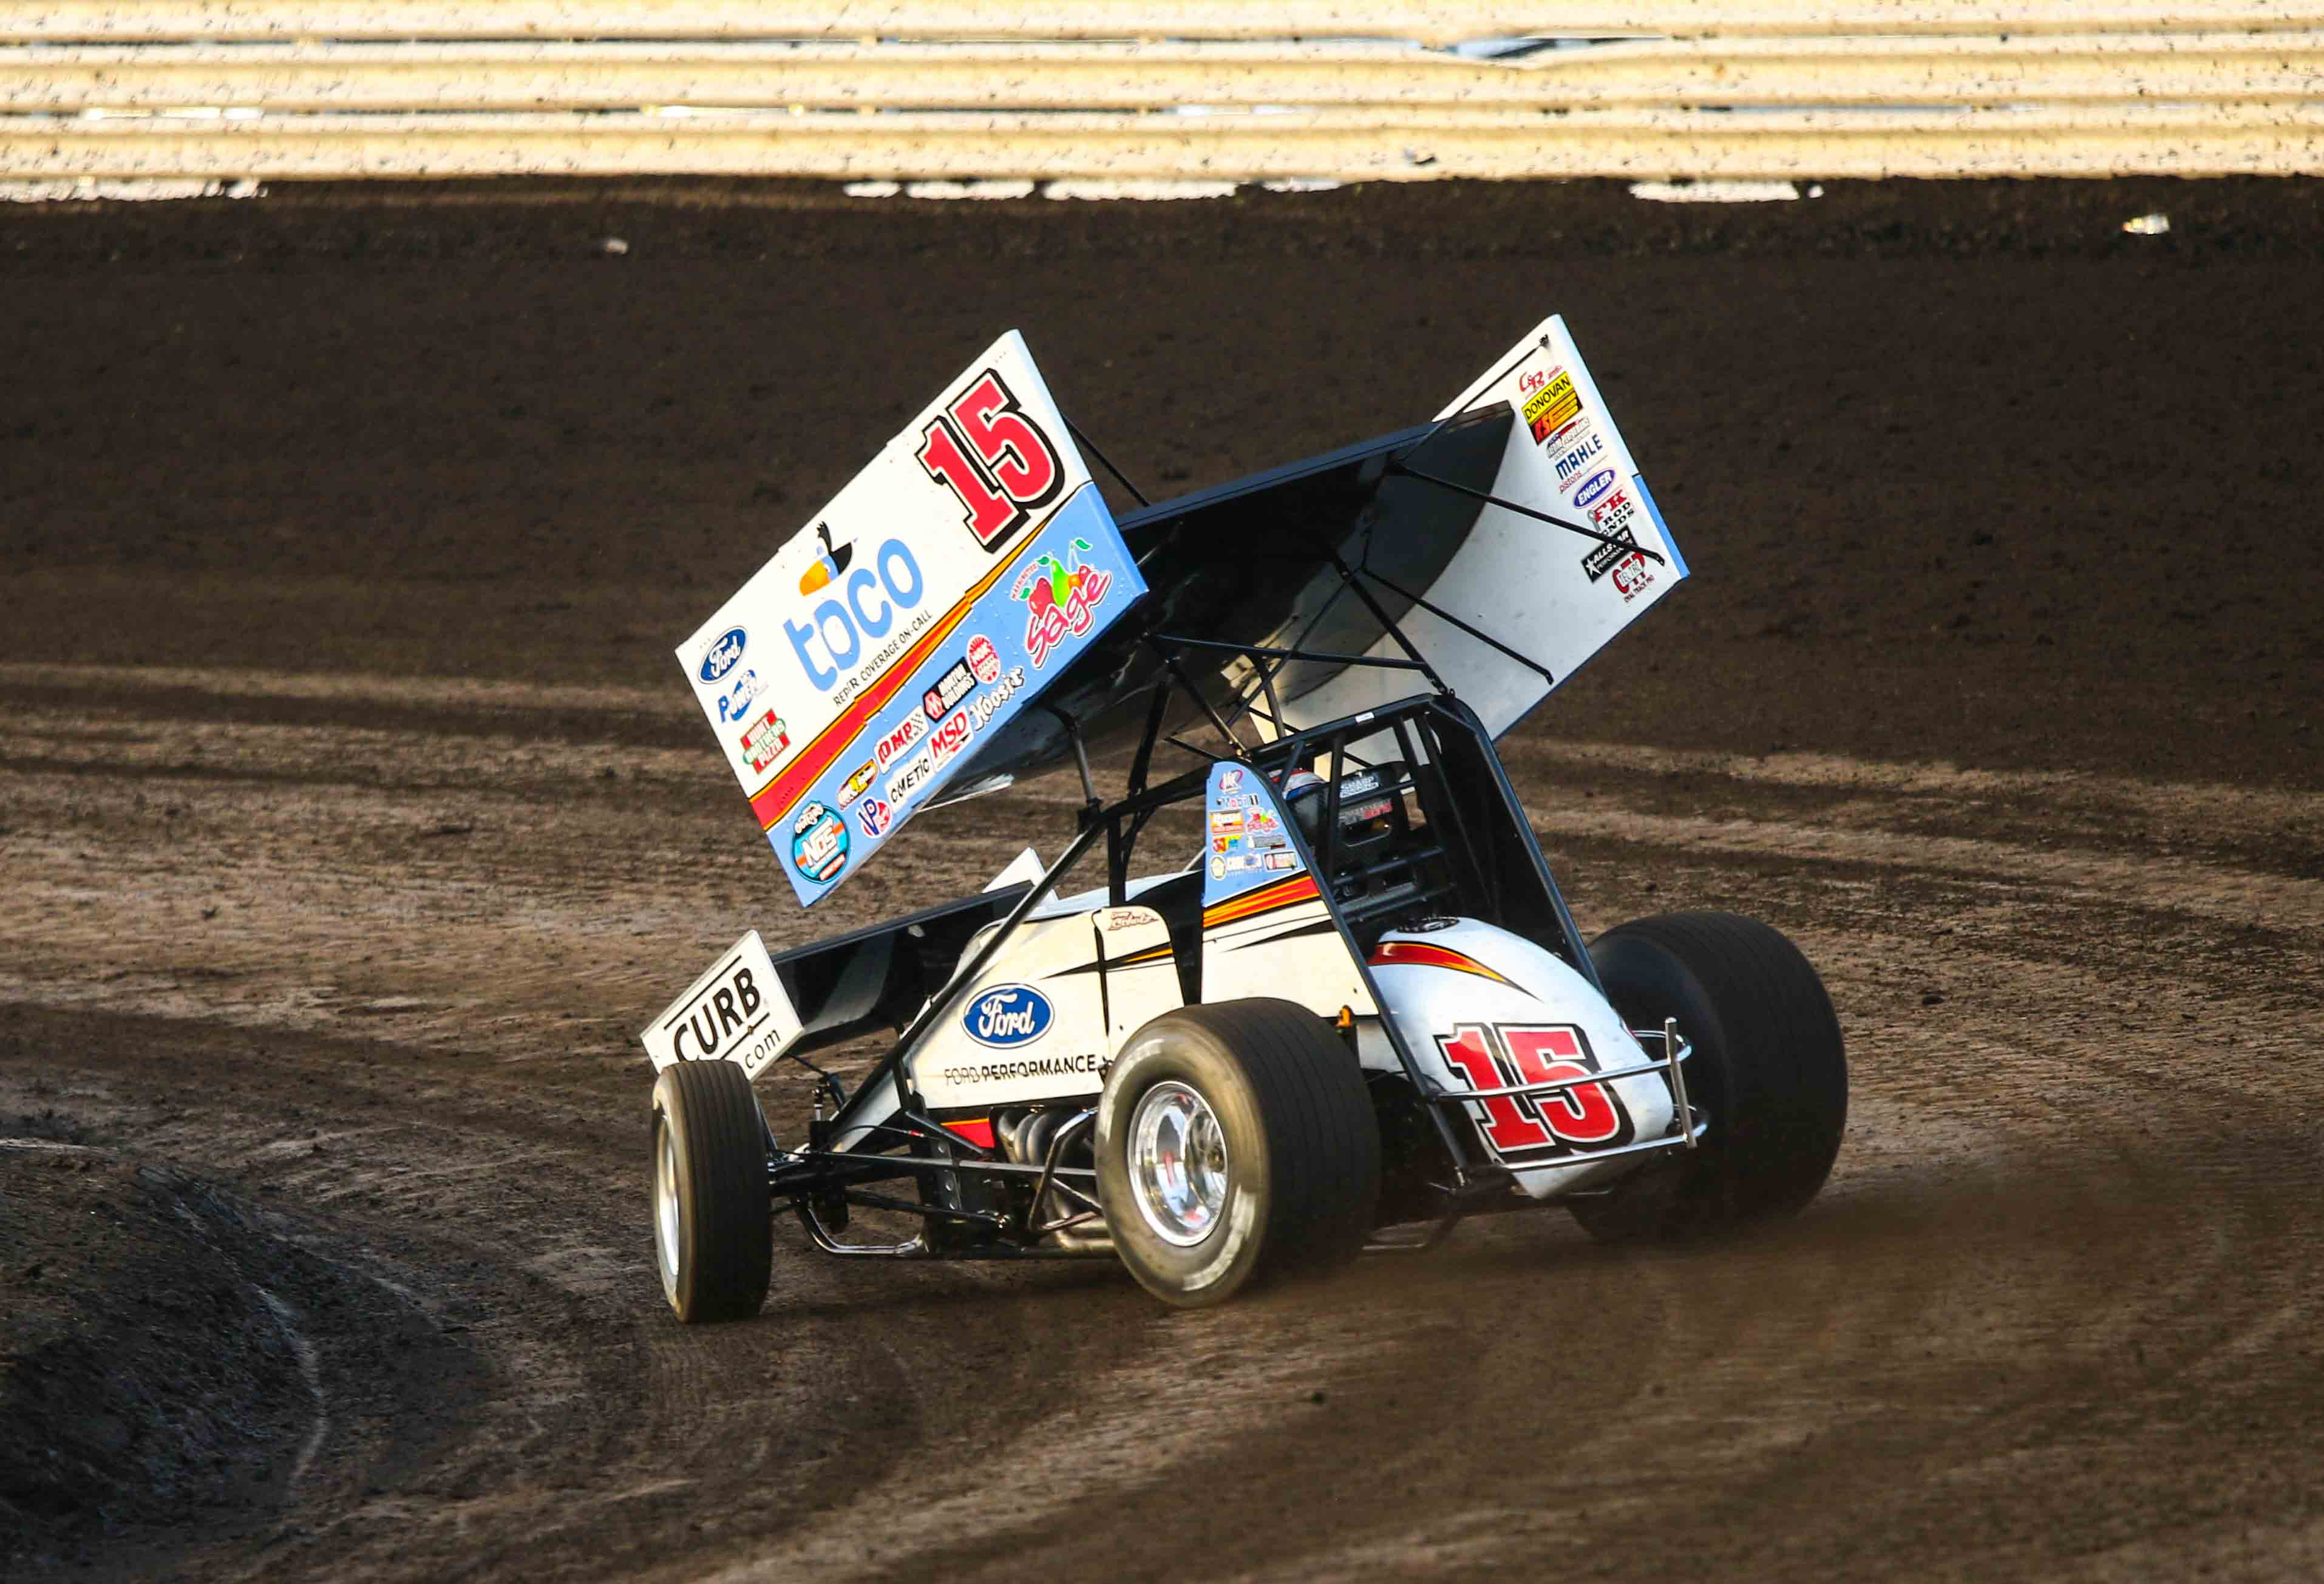 'It all comes down to this' – Schatz looks forward to opportunity of claiming 11th title